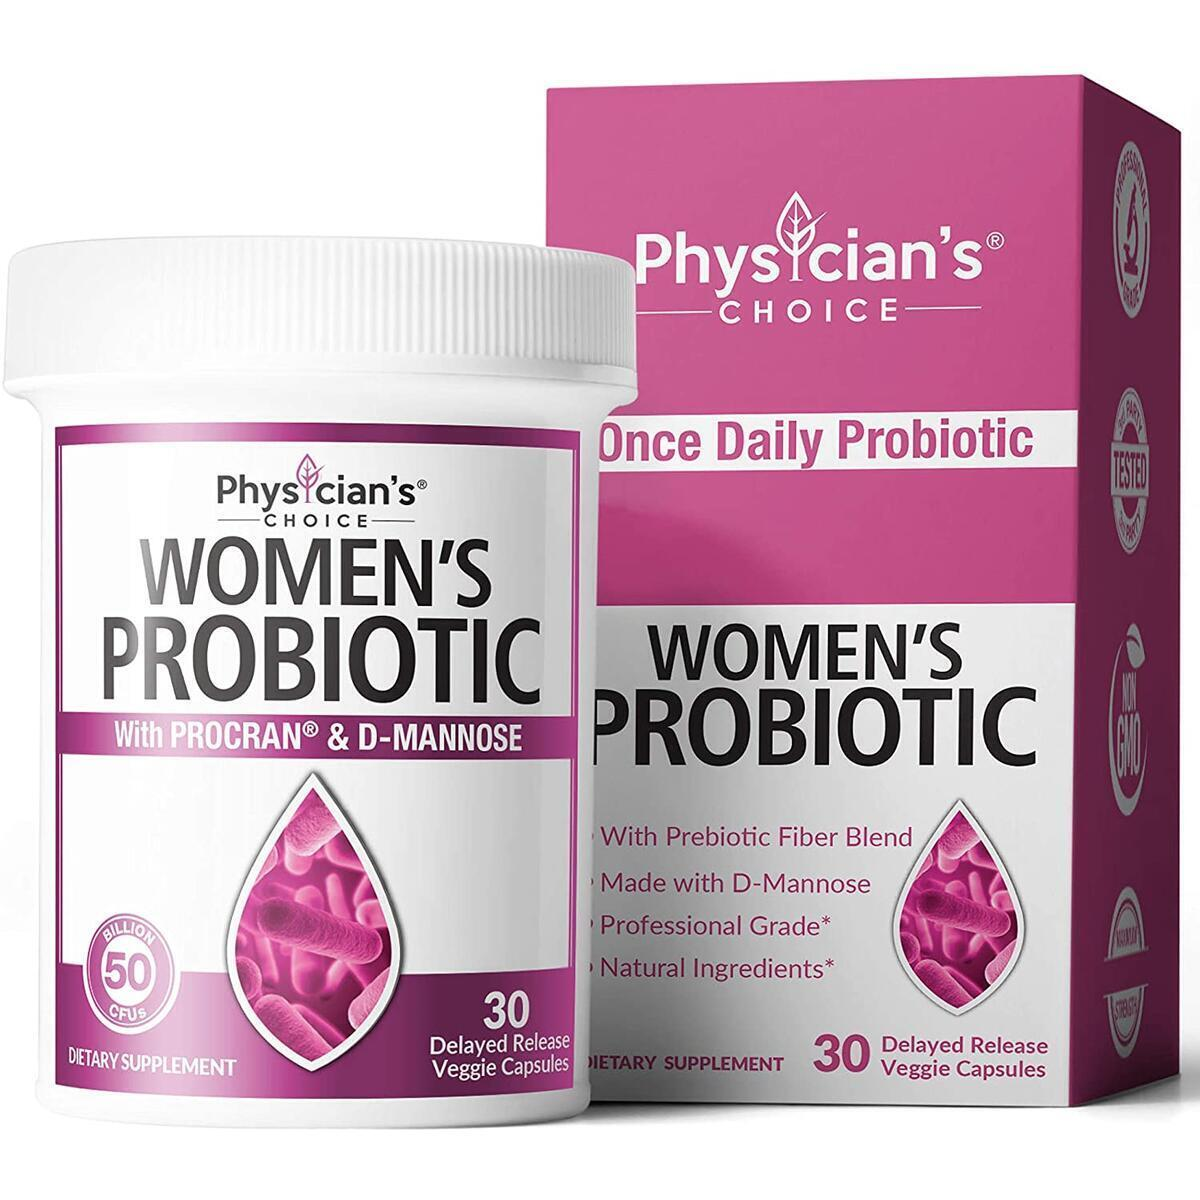 Women's Probiotic from Physician's Choice